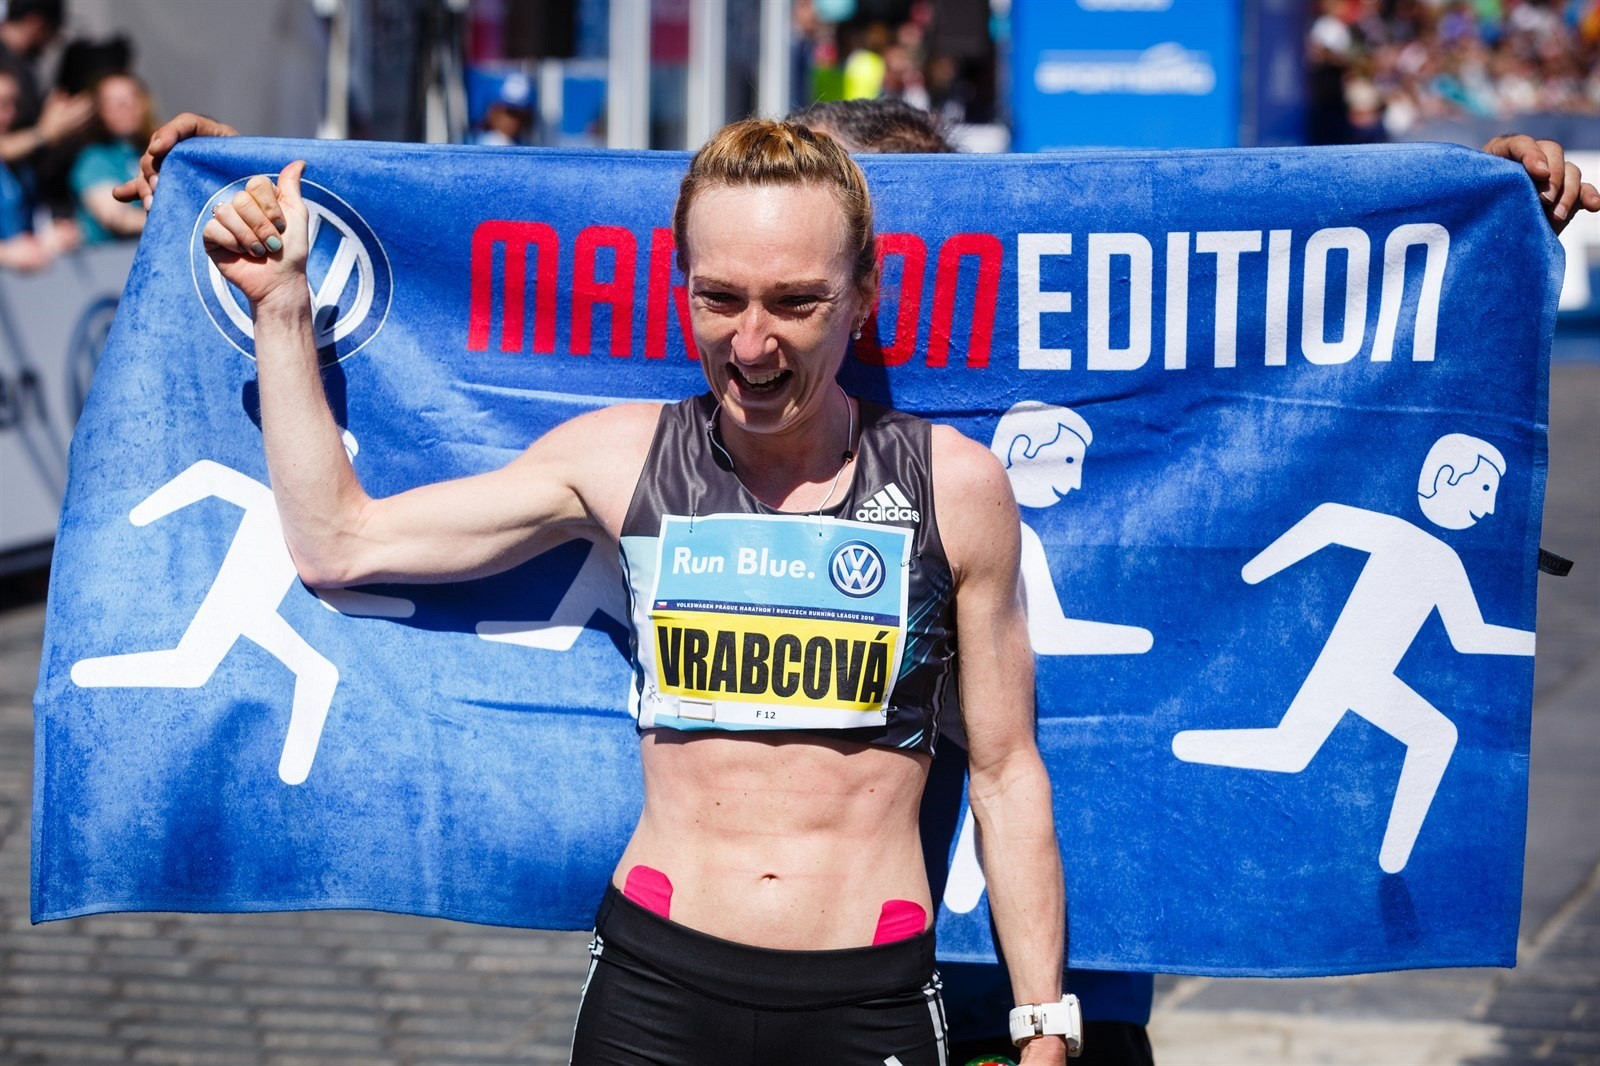 Eva Vrabcová Nývltová is the hot fovorite to win the  Karlovy Vary Half Marathon